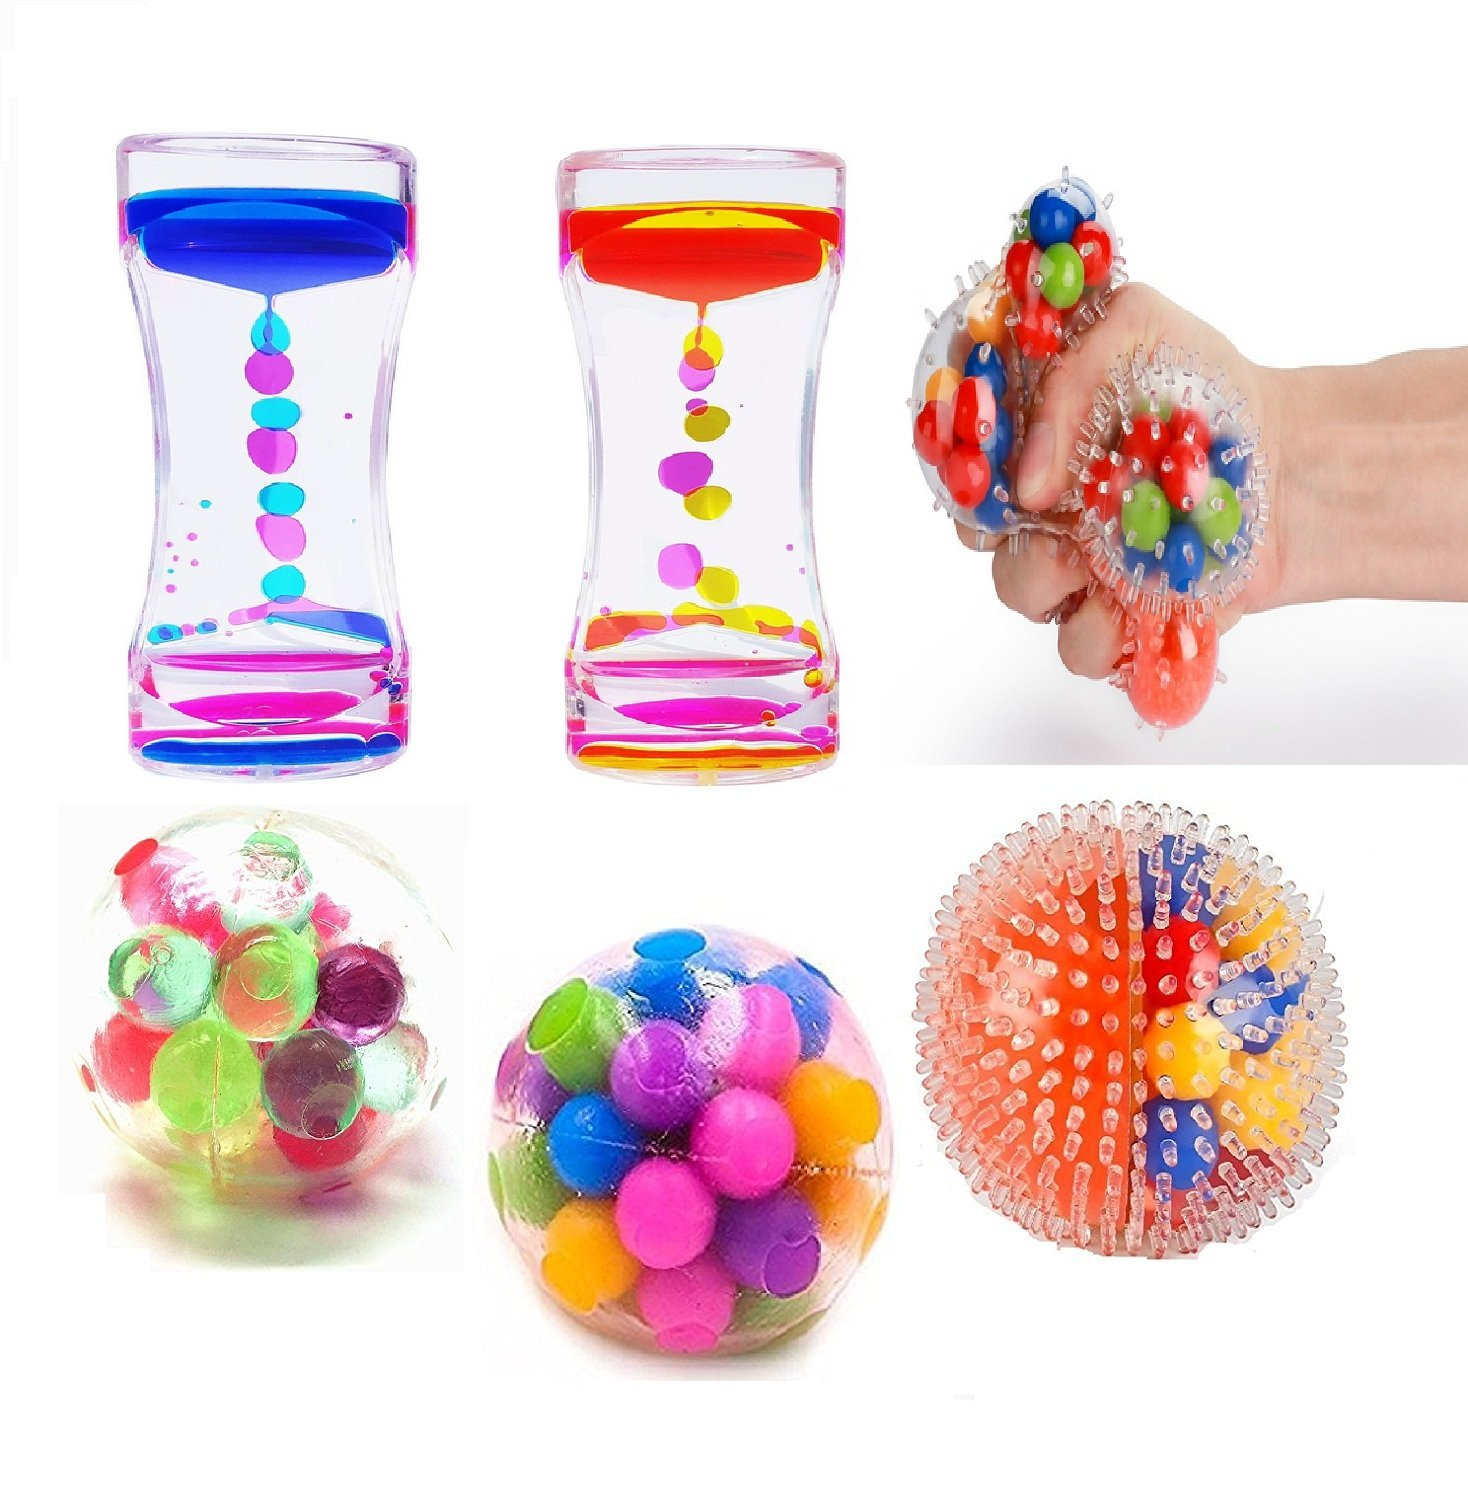 Slovery Stress Balls For Kids-3 Different DNA Stress Balls-2 Liquid Motion Bubbler Timer- Stress Relief Fidget Toys For Anxiety Kids Adults With Autism ADHD & More